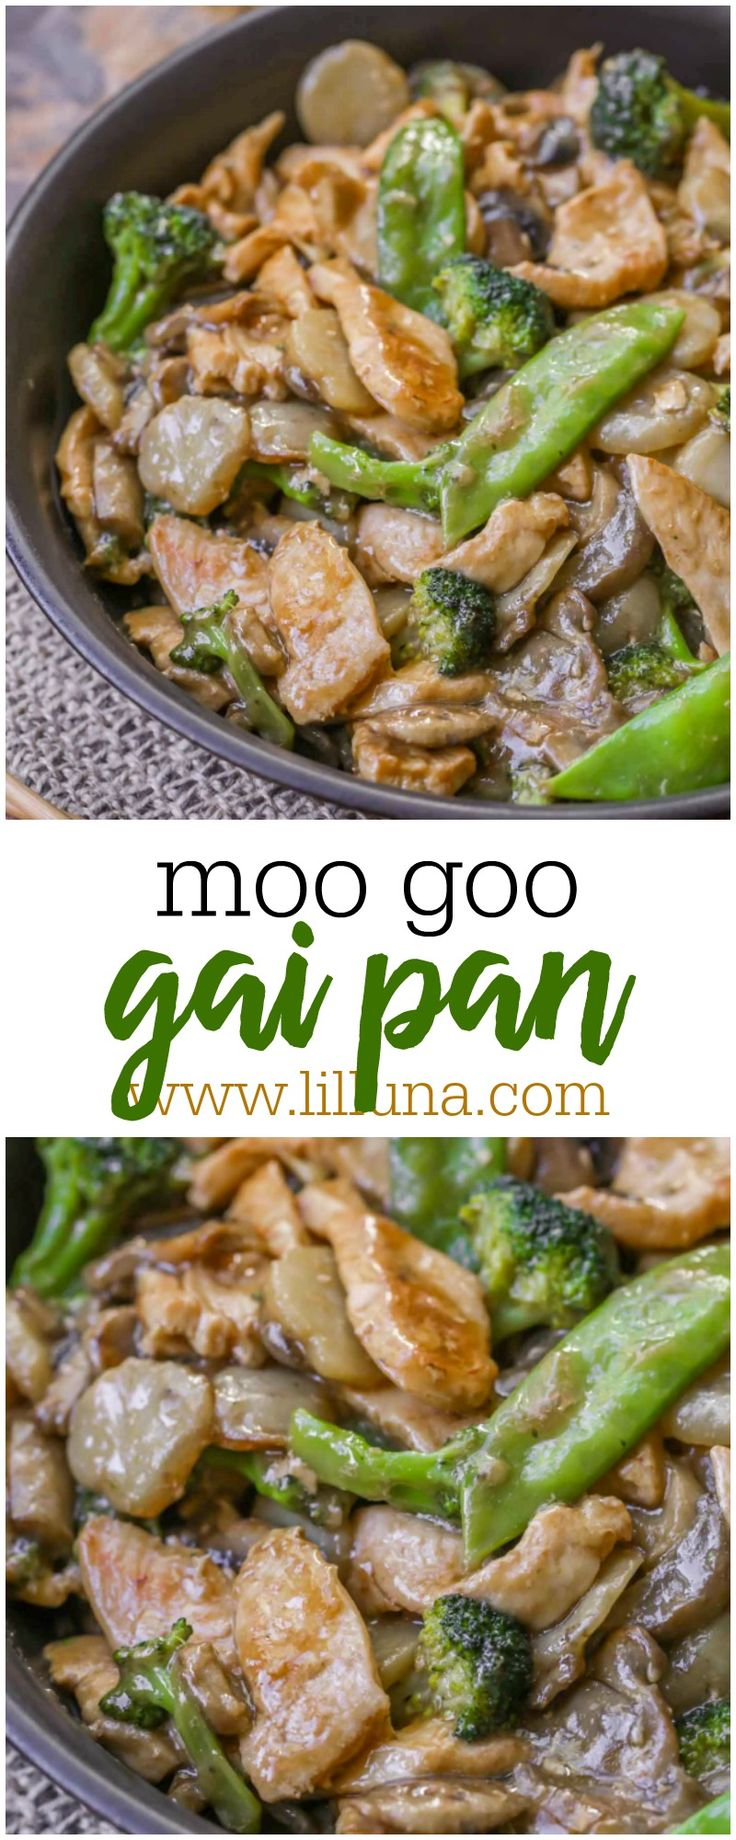 Delicious Moo Goo Gai Pan recipe - chicken, snow peas, broccoli and mushrooms covered in a delicious Asian sauce.